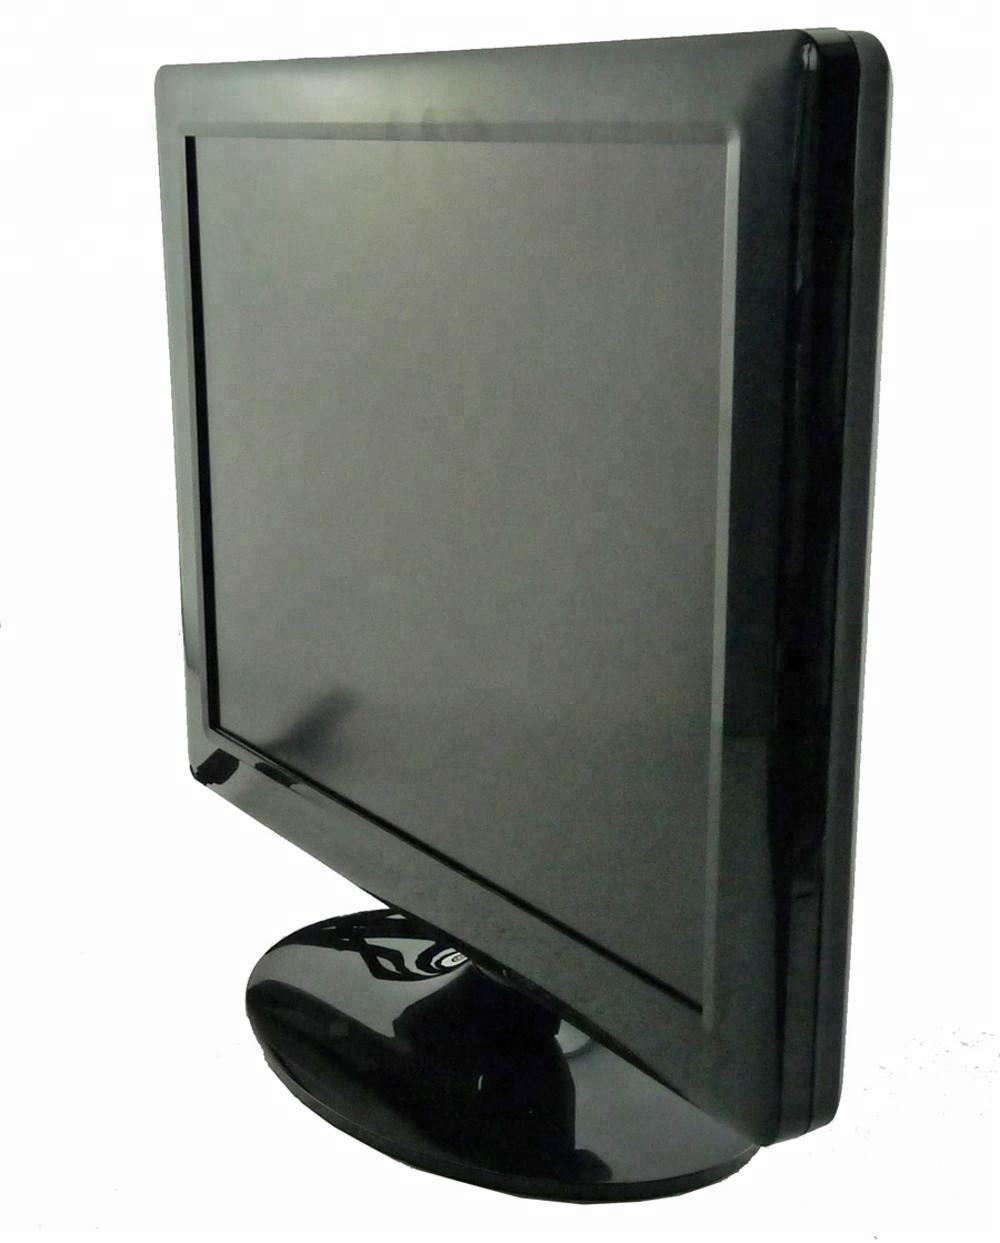 15 lcd square monitor inch tft computer small size tv